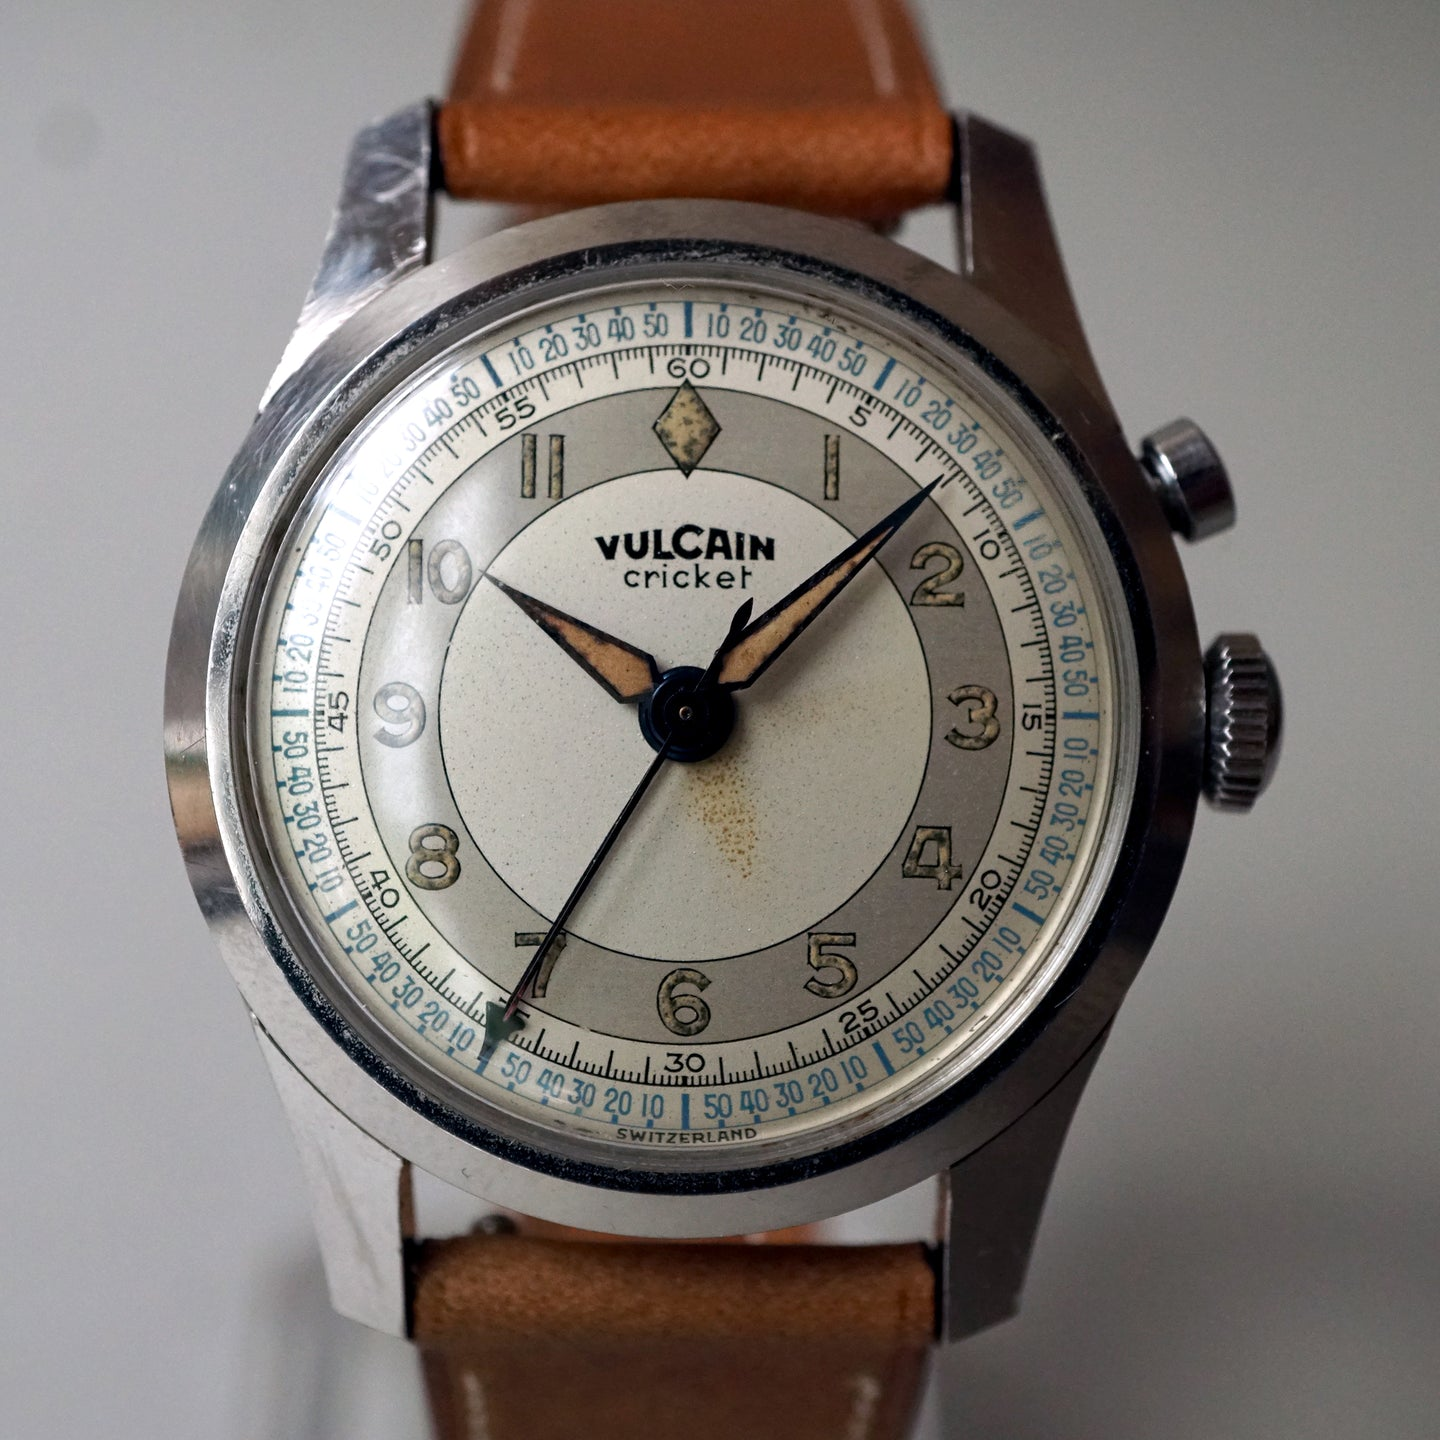 1940s VULCAIN CRICKET ALARM WATCH